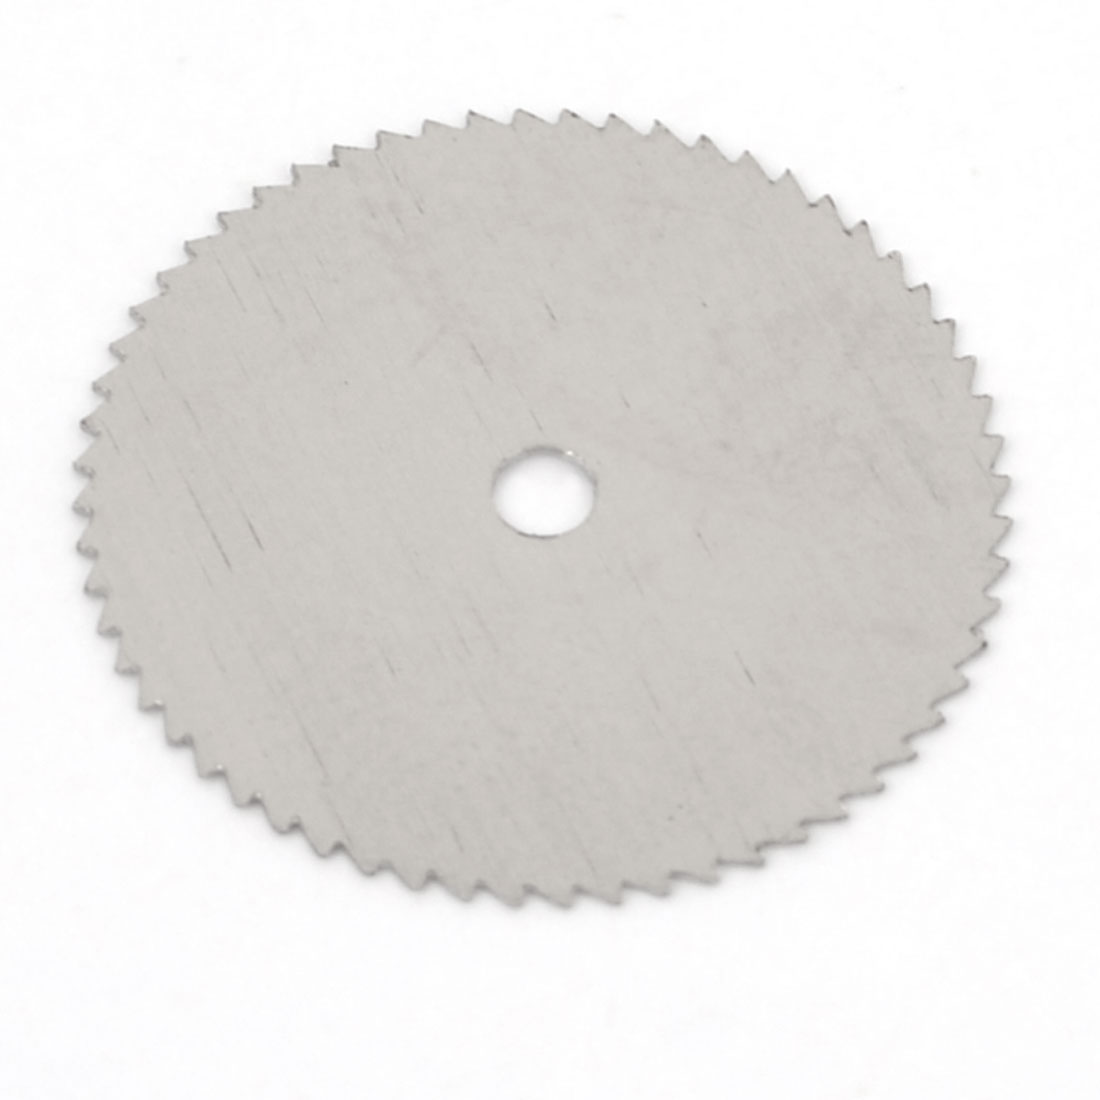 Silver Tone HSS Woodworking Circular 18mm Dia 2mm Arbor Hole Diameter 0.35mm Thickness Nitride Slitting Saw